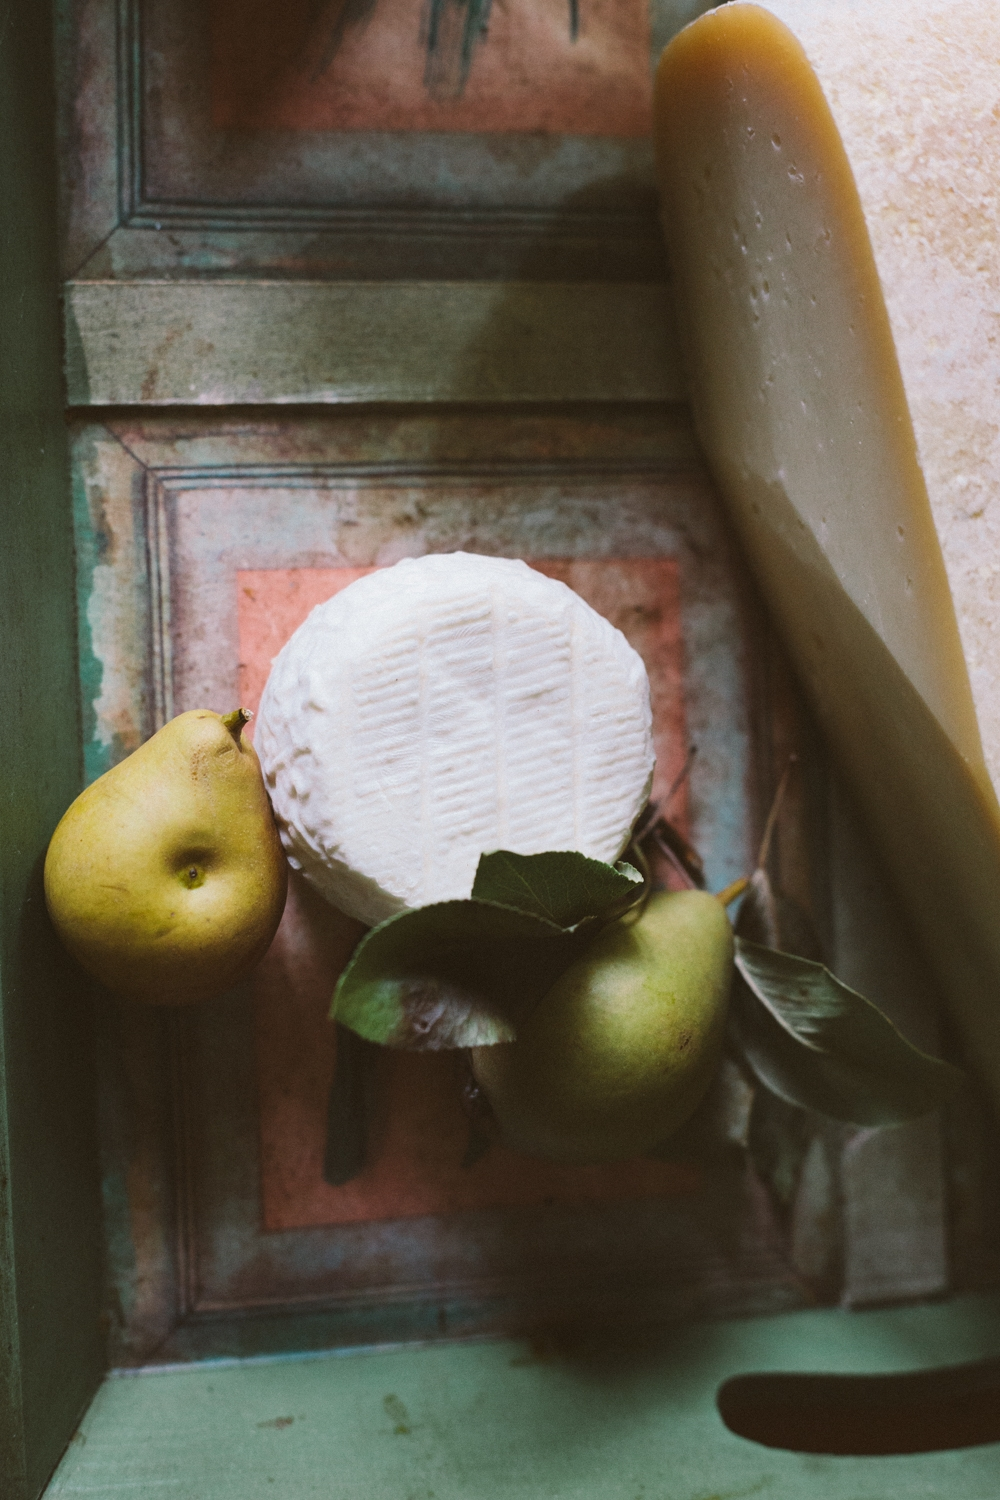 Goat Cheese, Food Photography, Photographer, Michigan, Organic, Styled Shoot, Fruits